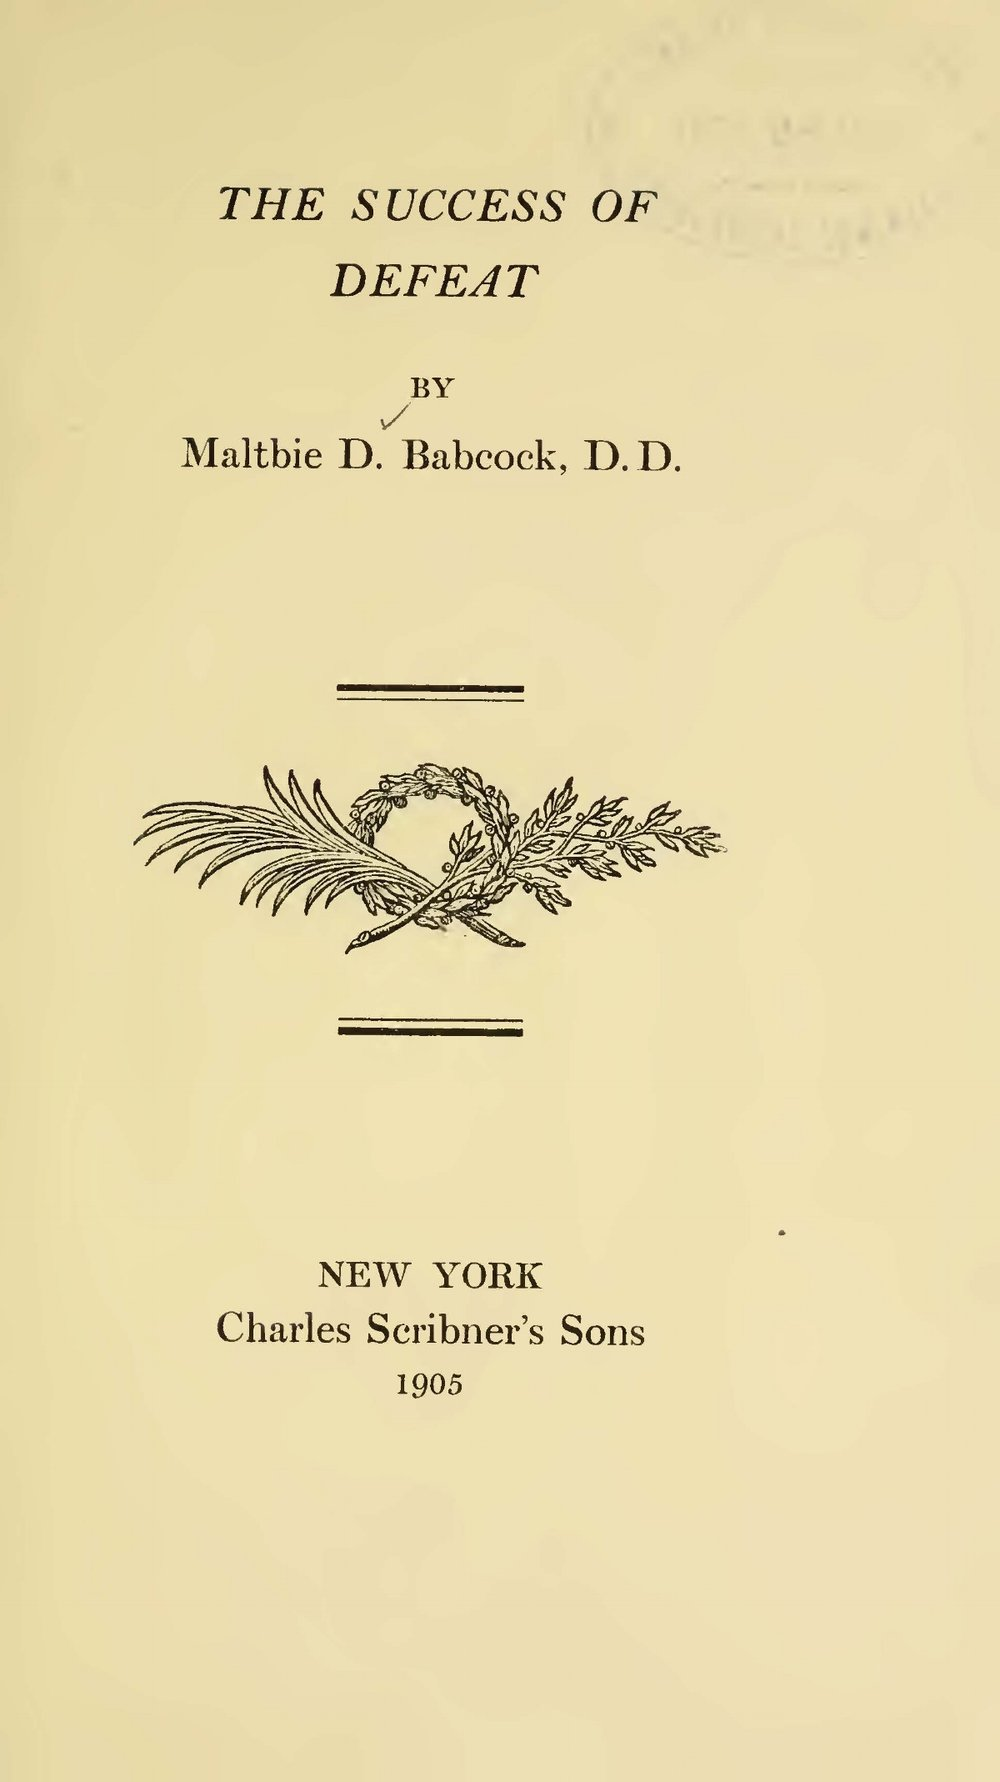 Babcock, Maltbie Davenport, The Success of Defeat Title Page.jpg